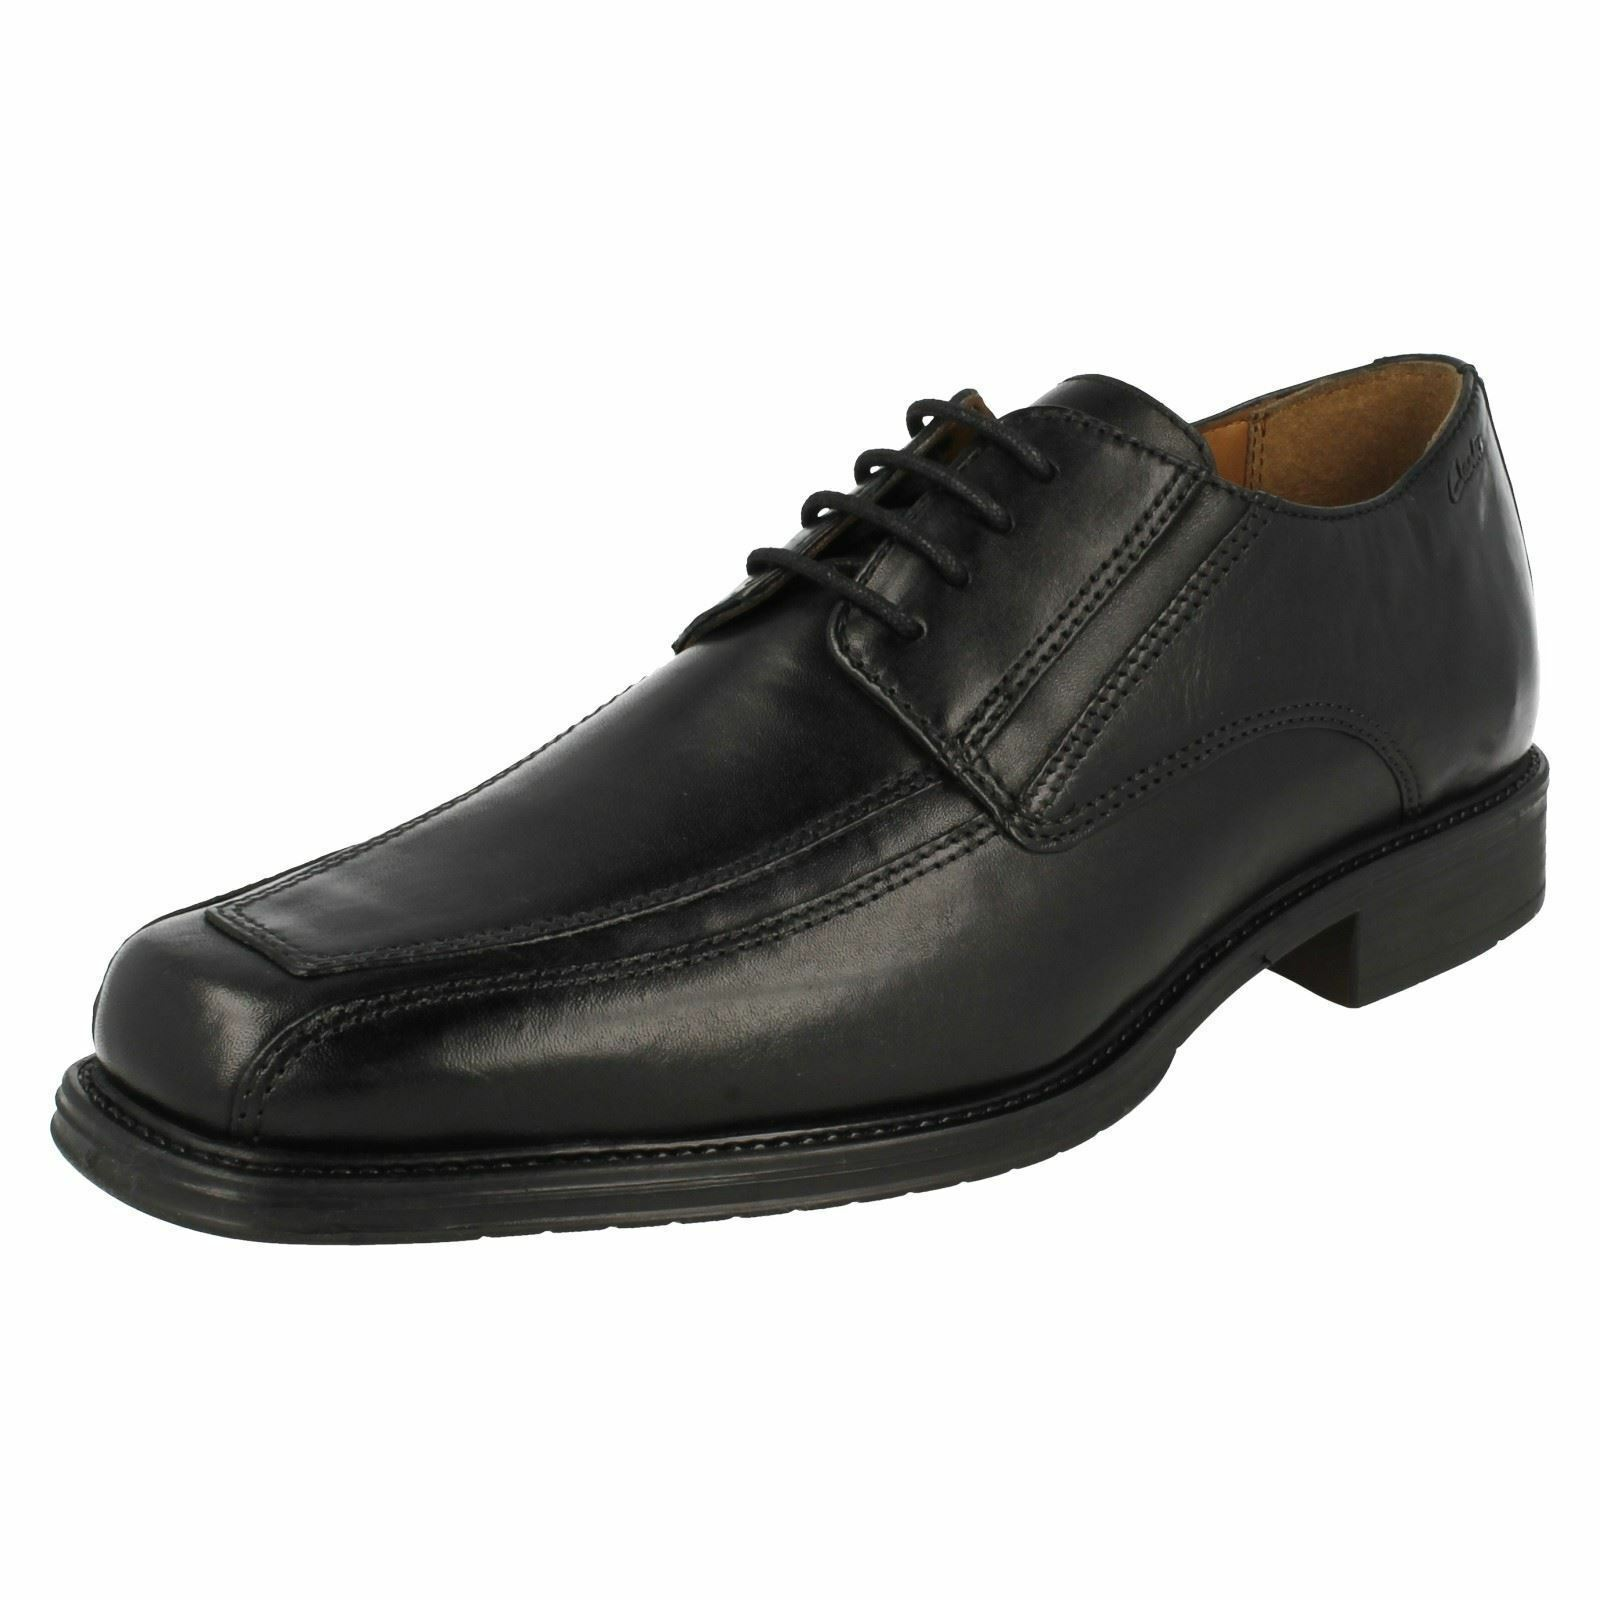 MENS CLARKS SMOOTH LEATHER CLASSIC FORMAL SMART LACE UP SHOES DRIGGS WALK SIZE